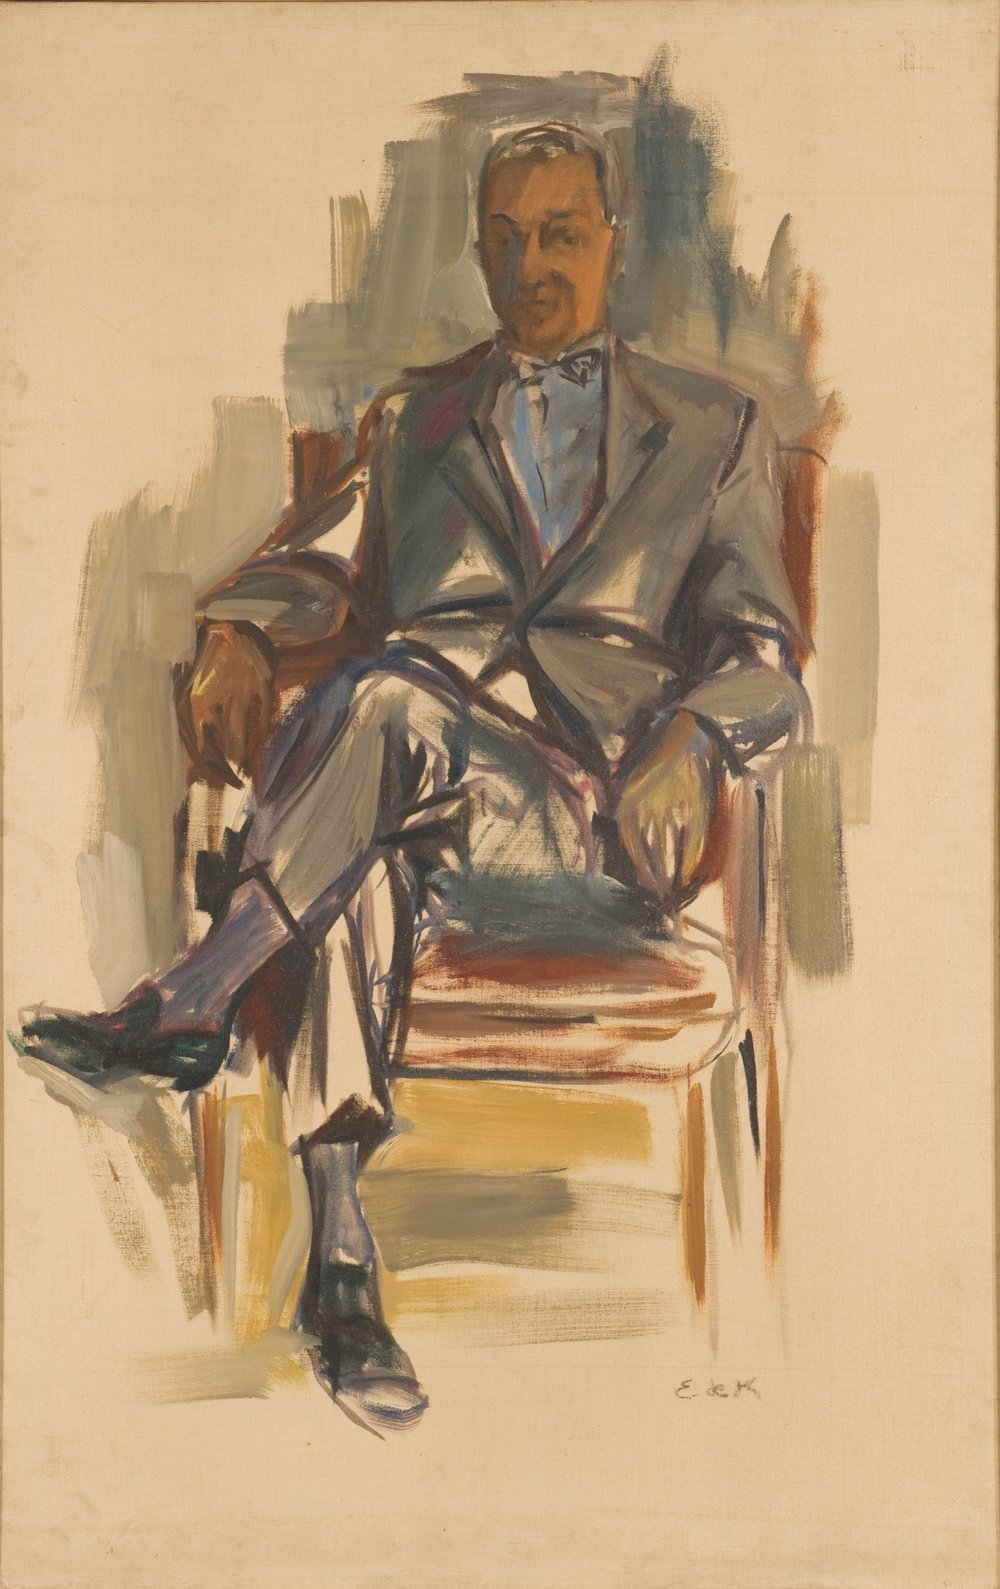 Portrait of Joseph Hirshhorn , ca. 1952, oil on canvas, 44 x 28 inches, Levis Fine Art